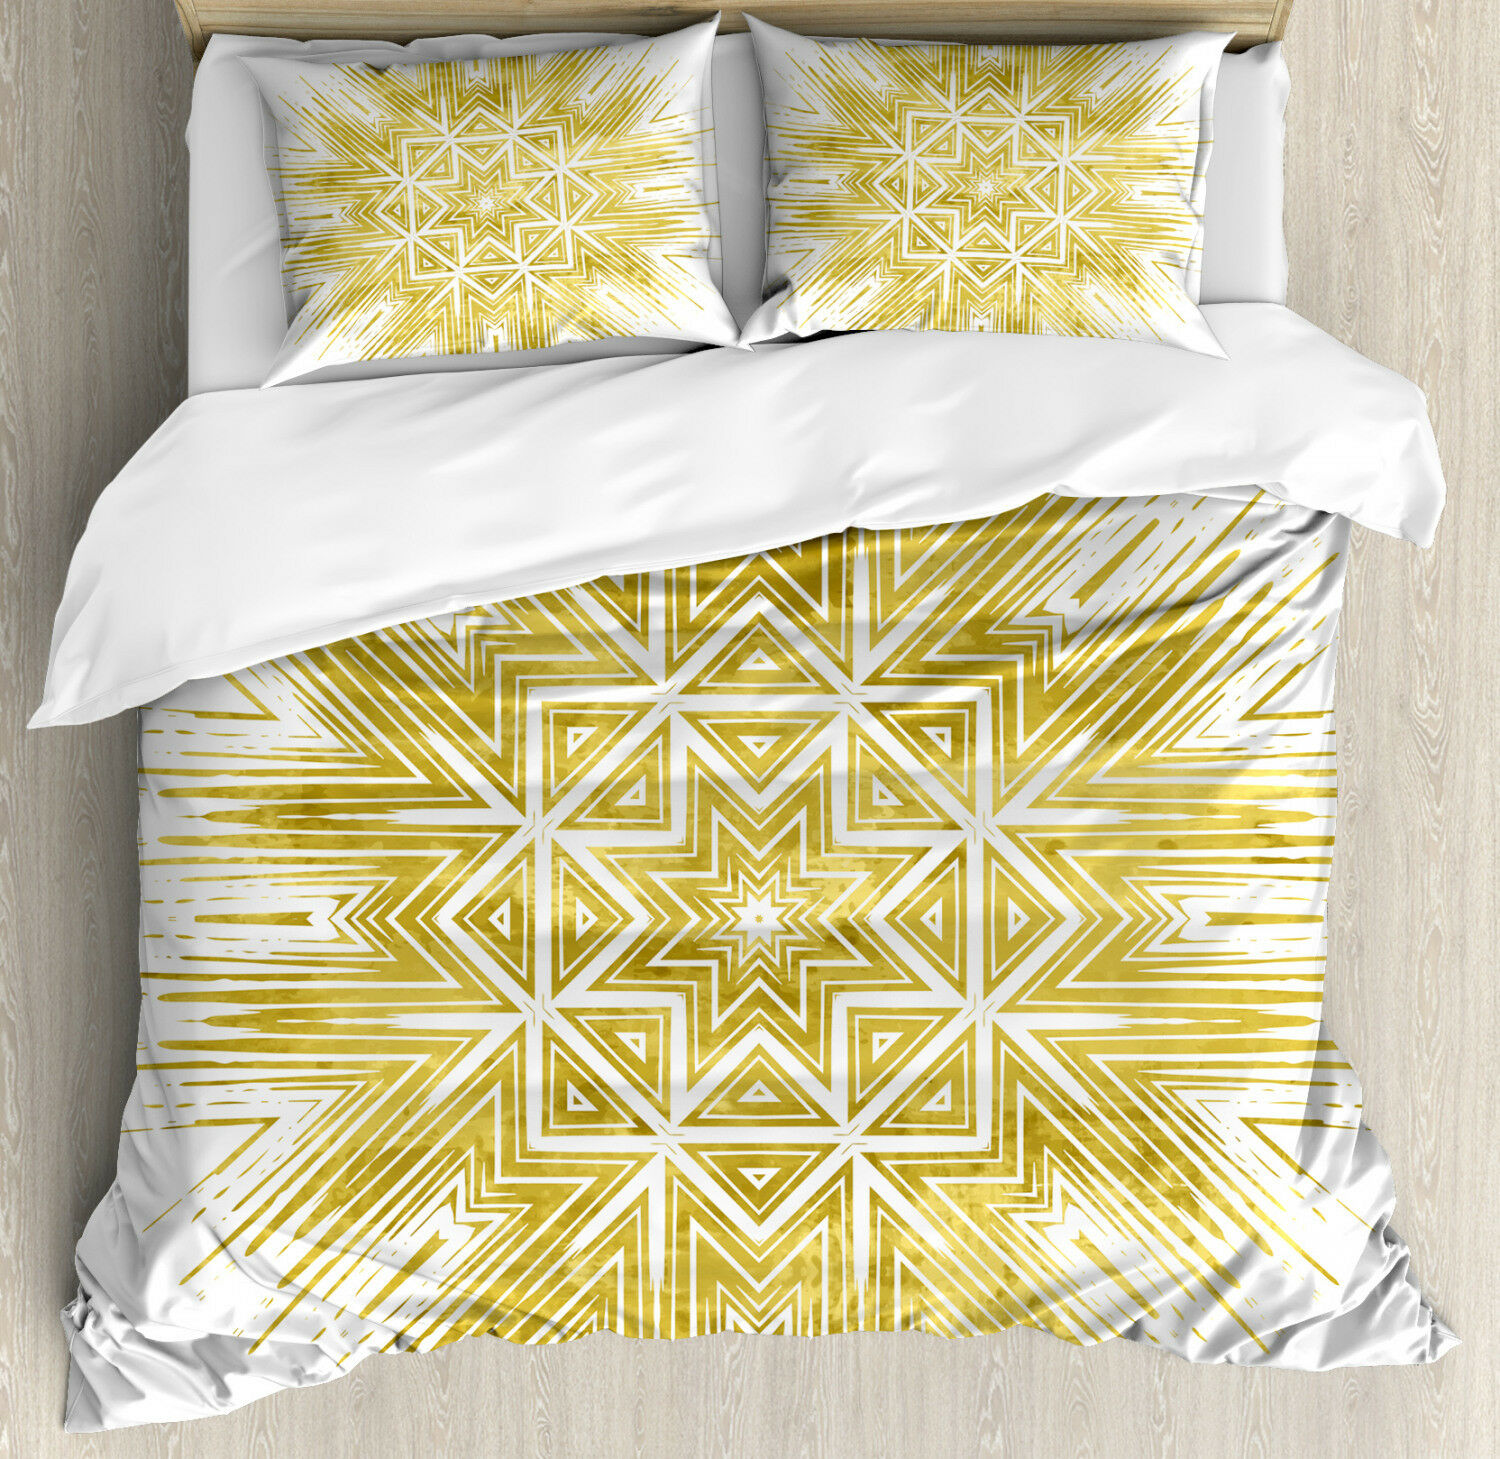 Mandala Duvet Cover Set with Pillow Shams Geometric Vivid Print